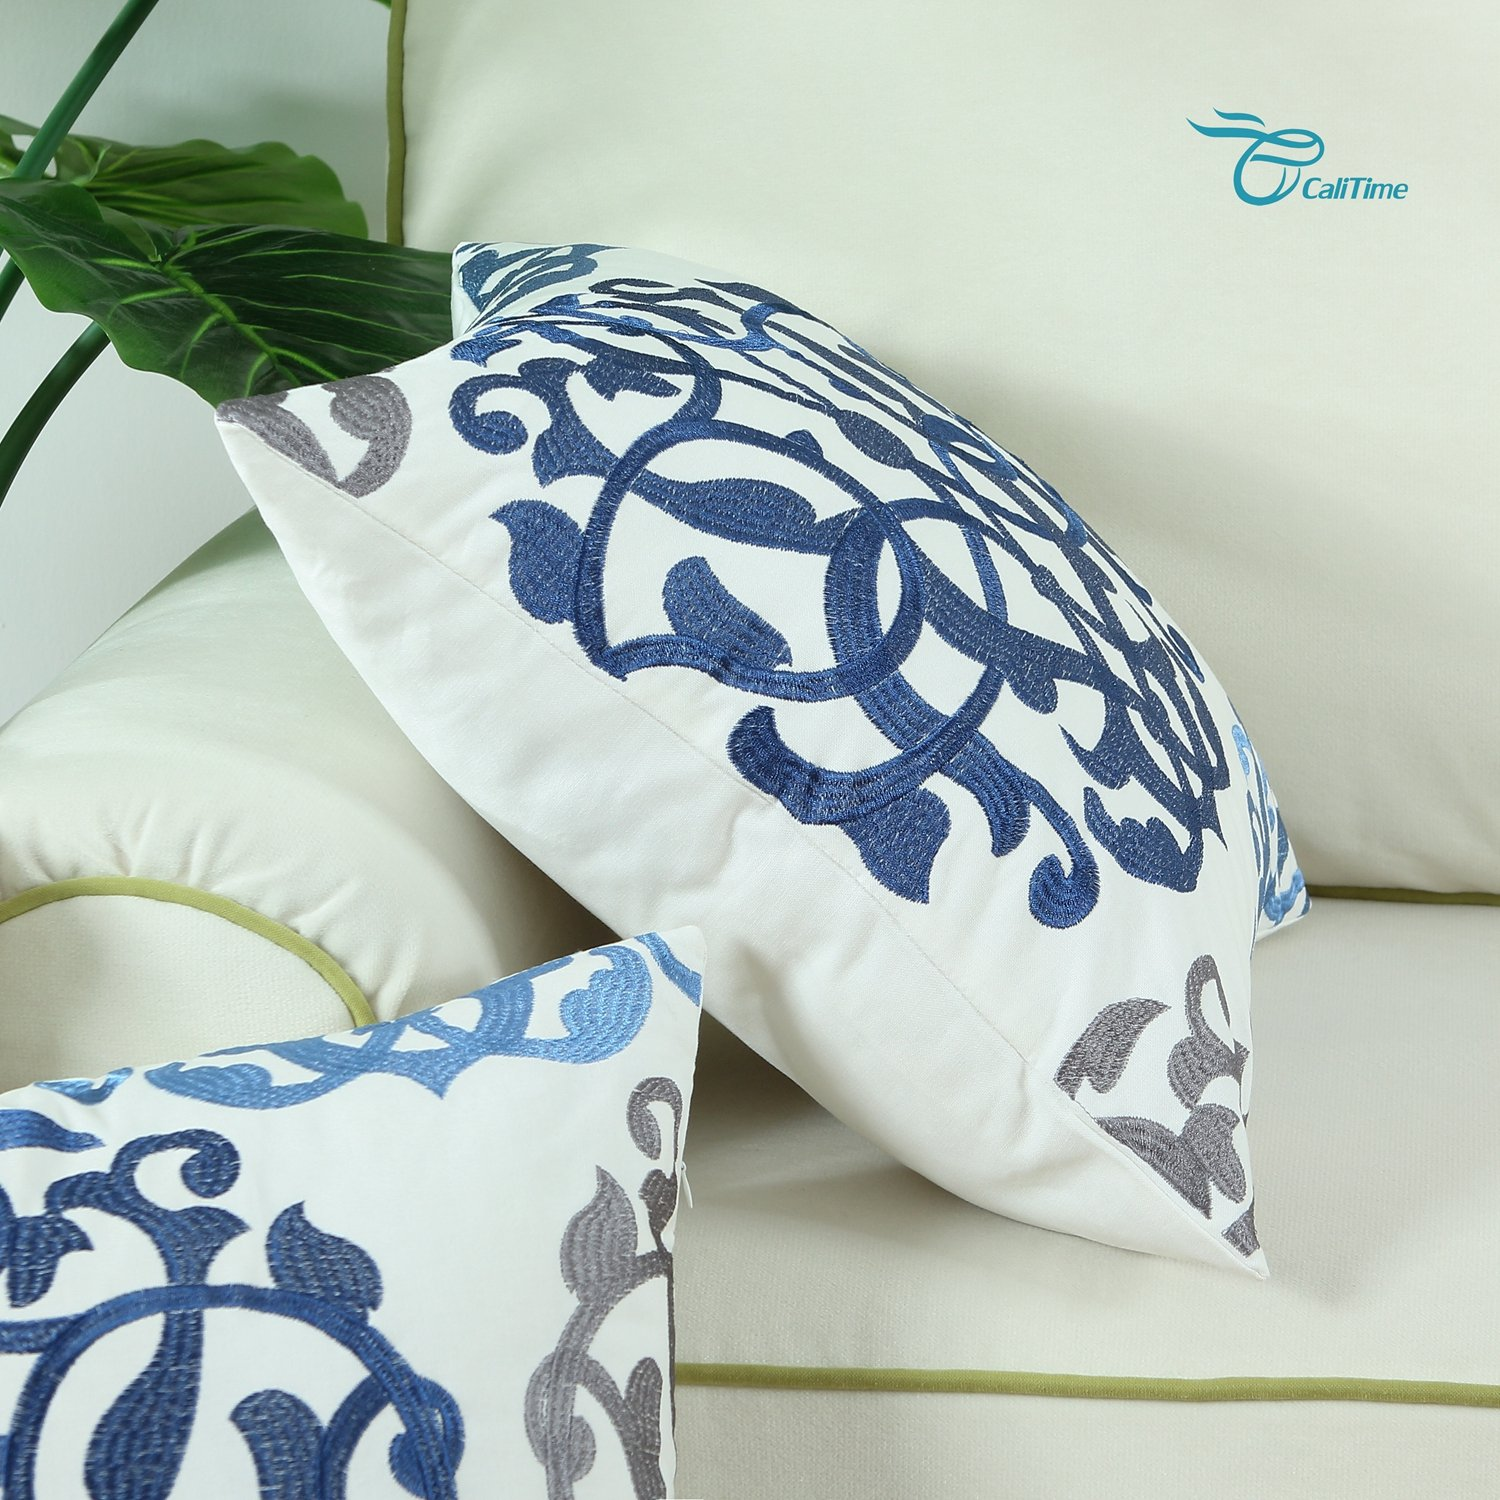 CaliTime Cotton Throw Pillow Case Cover for Bed Couch Sofa Vintage Compass Geometric Floral Embroidered 18 X 18 inches Blue Gray